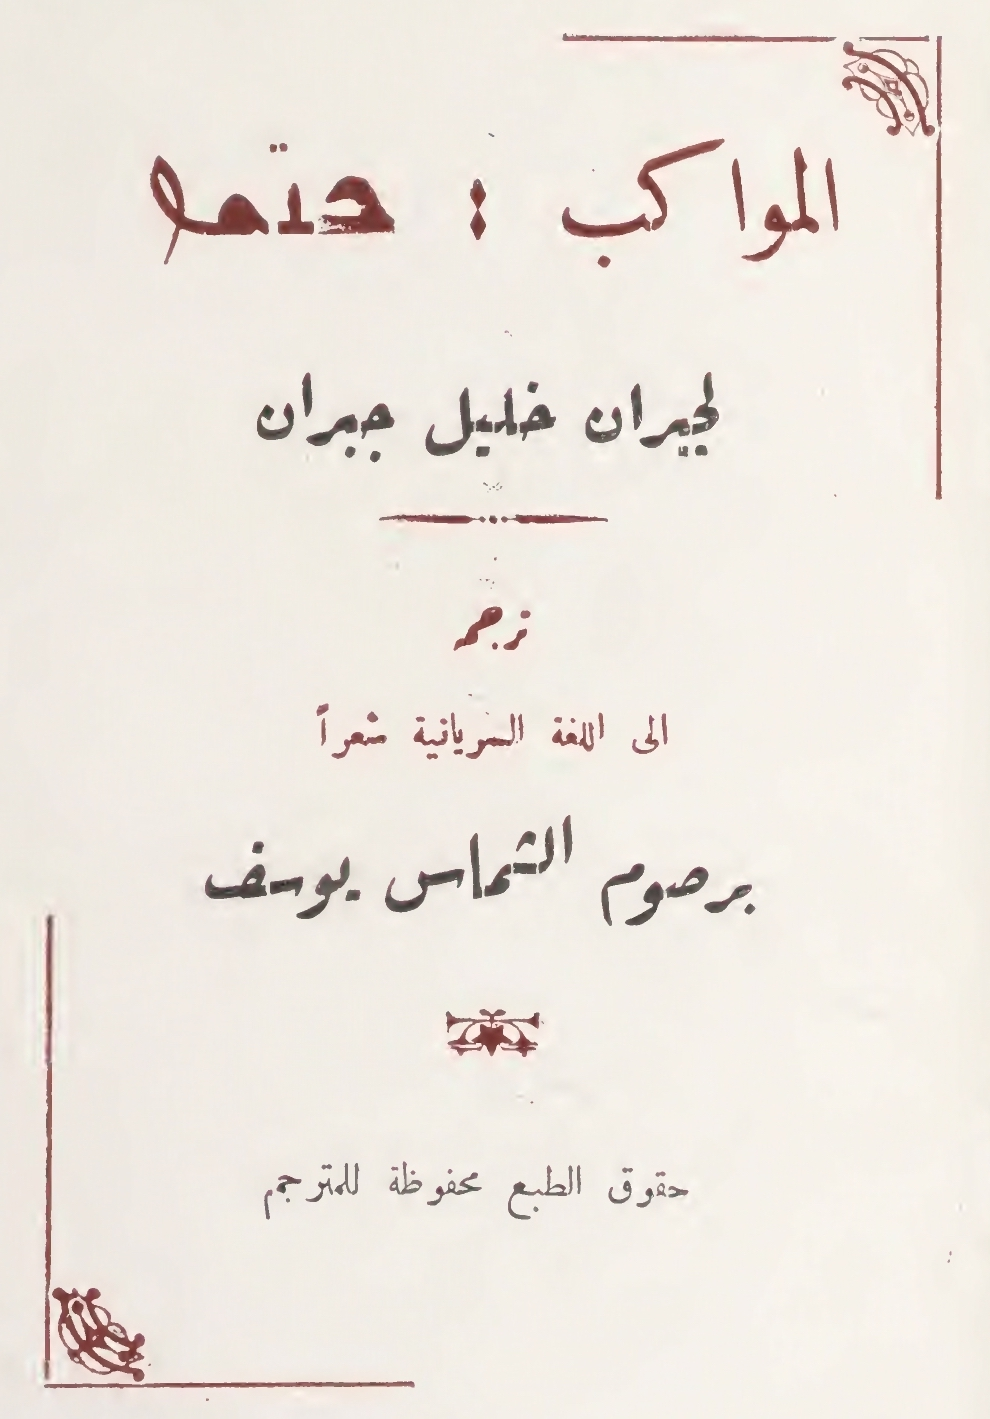 K. Gibran, The Processions (Translation into Syriac), Beth Mardutho: The Syriac Institute, 1957.